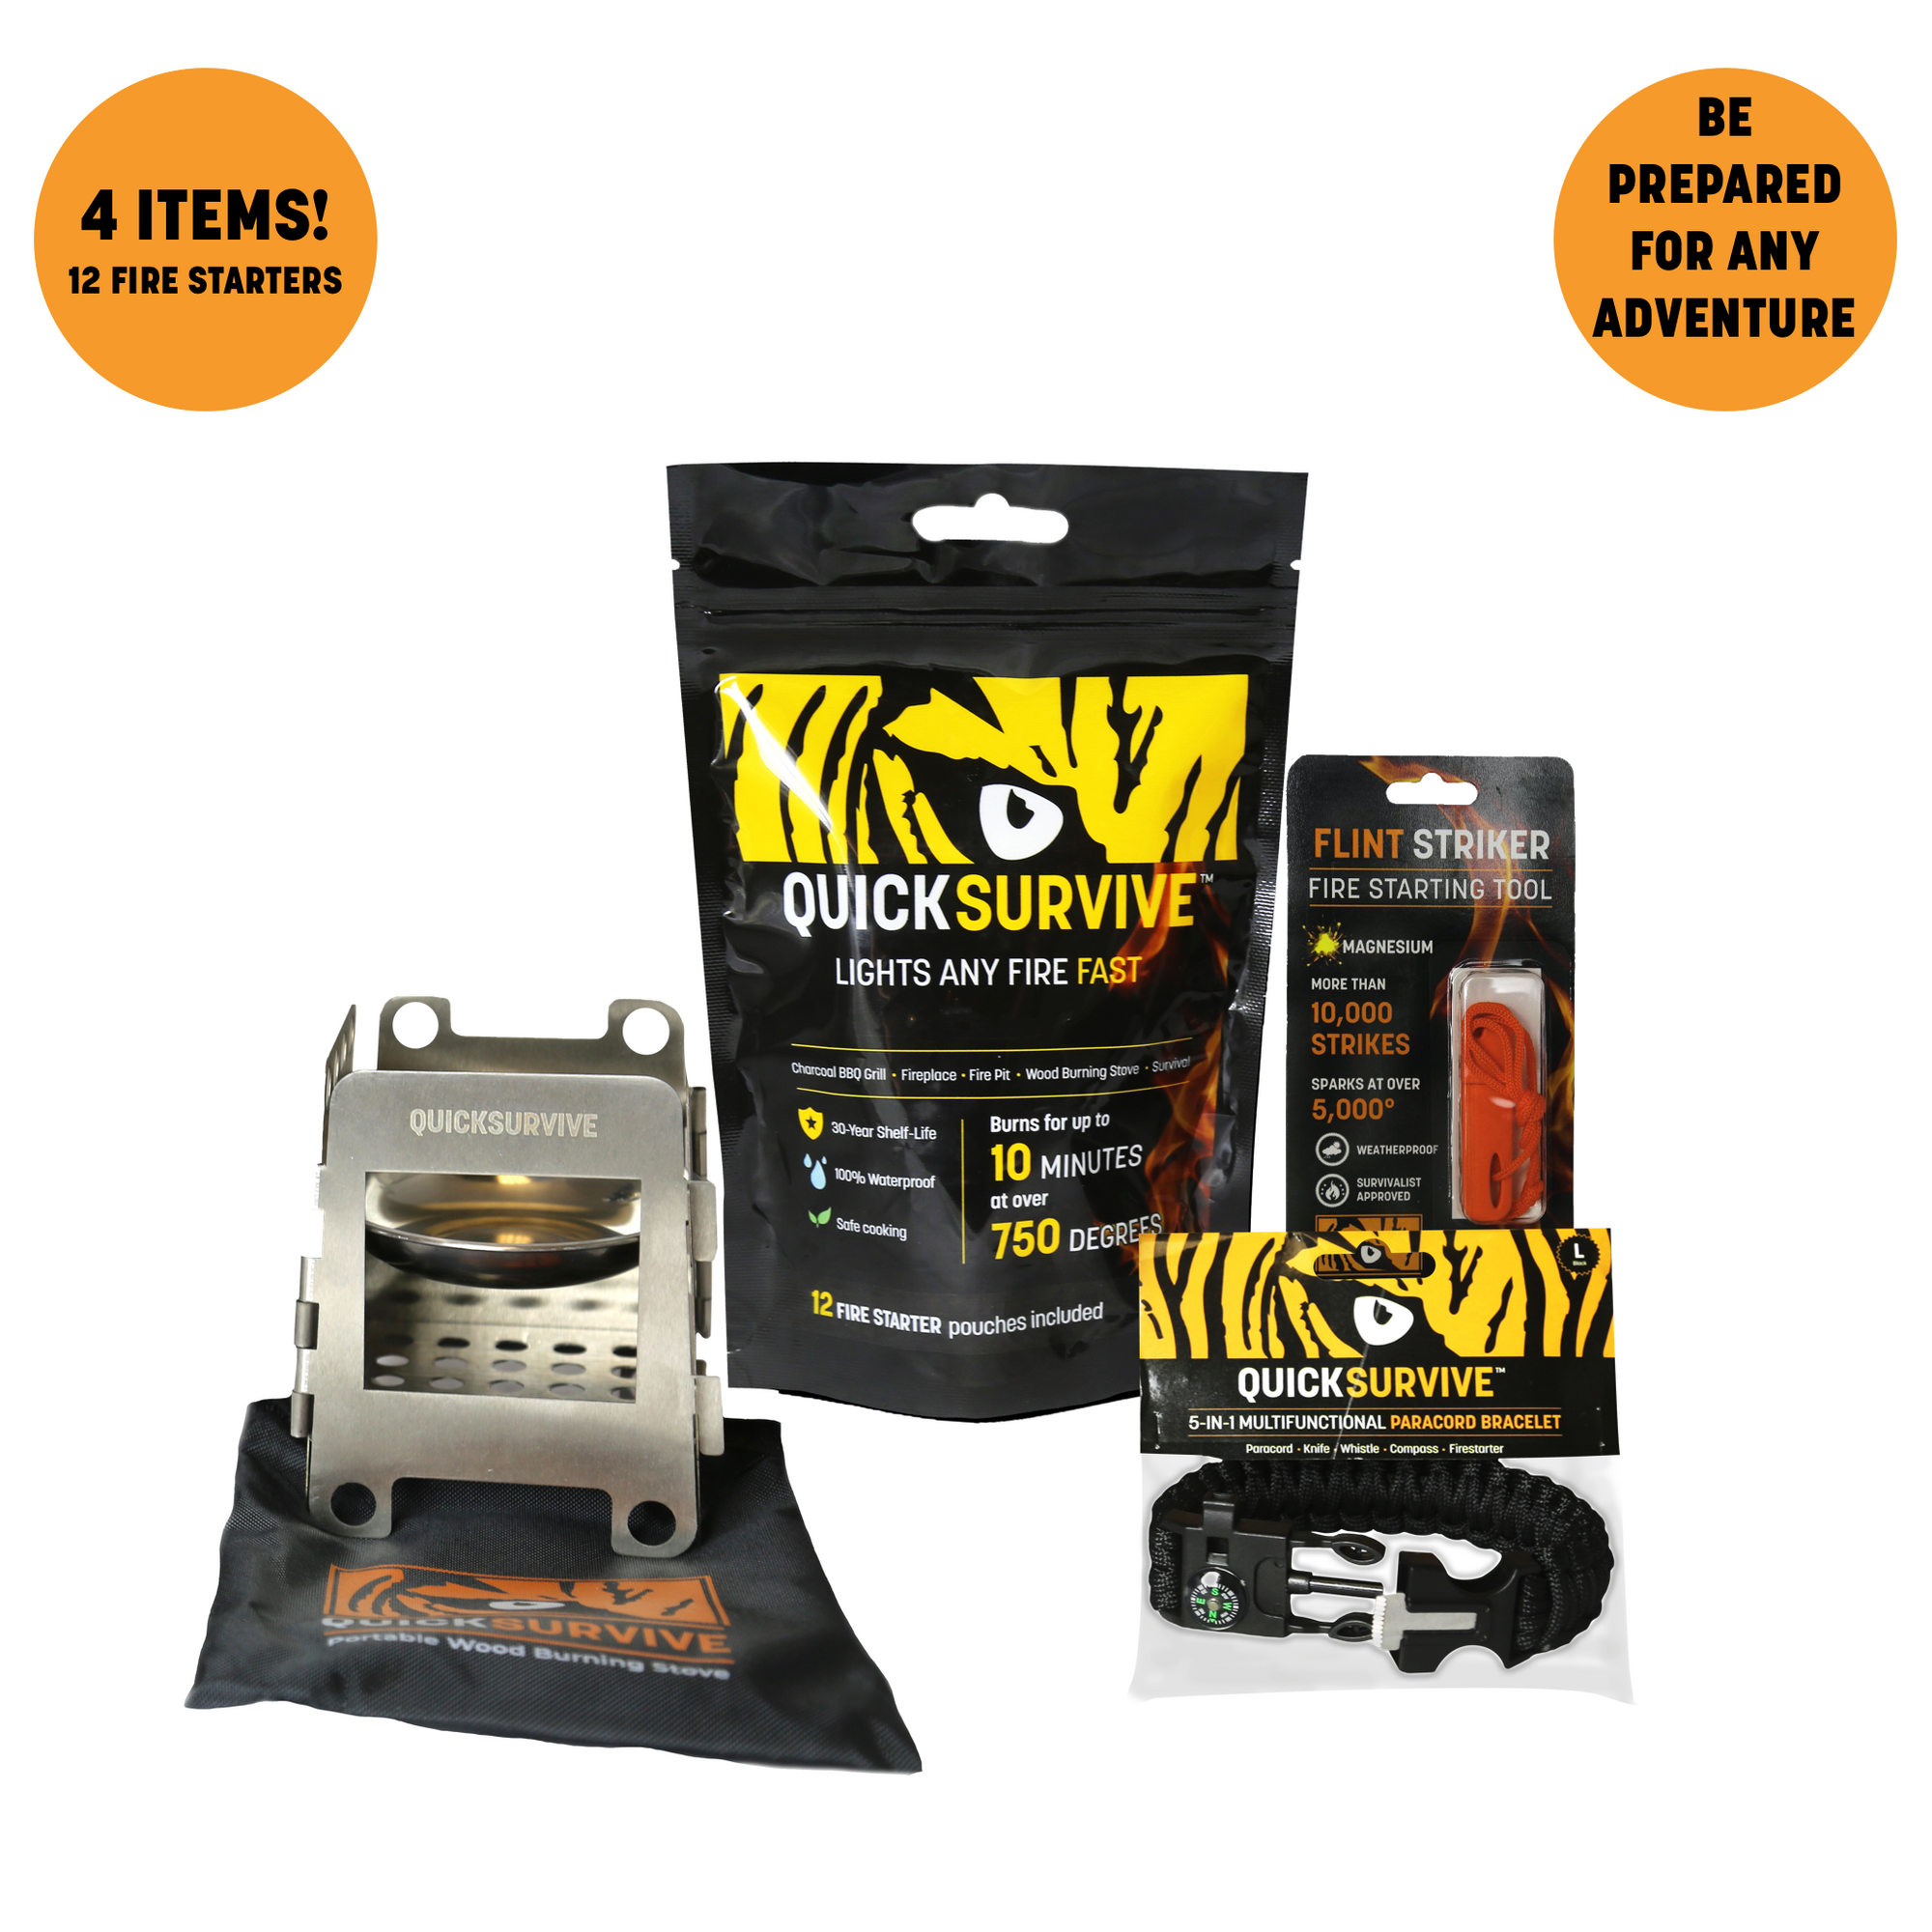 QuickSurvive Outdoor Adventure Bundle - 12 Piece of the Best Waterproof FireStarters For Fireplaces and Camping - Portable Mini Wood Burning Survival Stove Folding Portable, collapsible and lightweight for backpacking hiking Picnic Survival - Flint Striker For Camping and Survival 10,000 Strikes - 5-in-1 Paracord Bracelet essential for survival with the 10 feet of paracord, 100db whistle, compass, and knife all on your wrist.